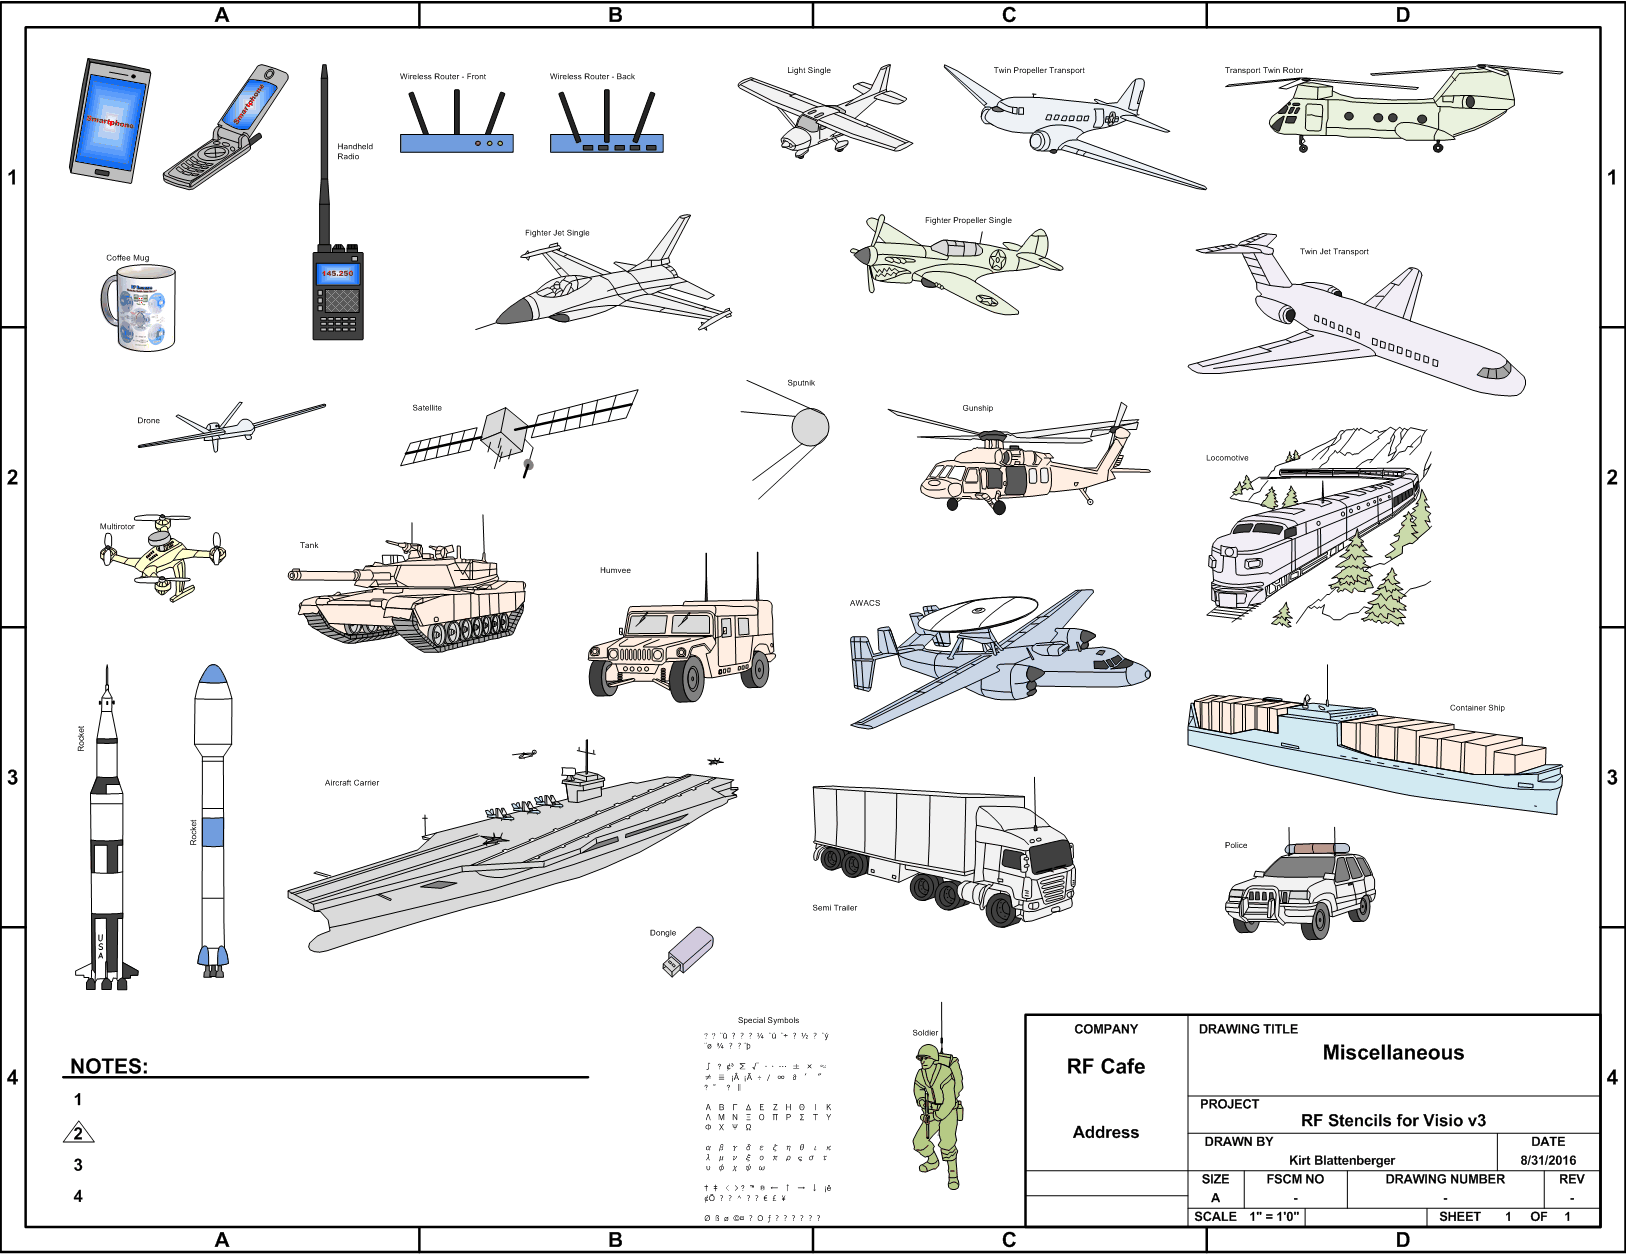 hight resolution of  airplanes ships rockets trains wireless devices visio stencils rf cafe